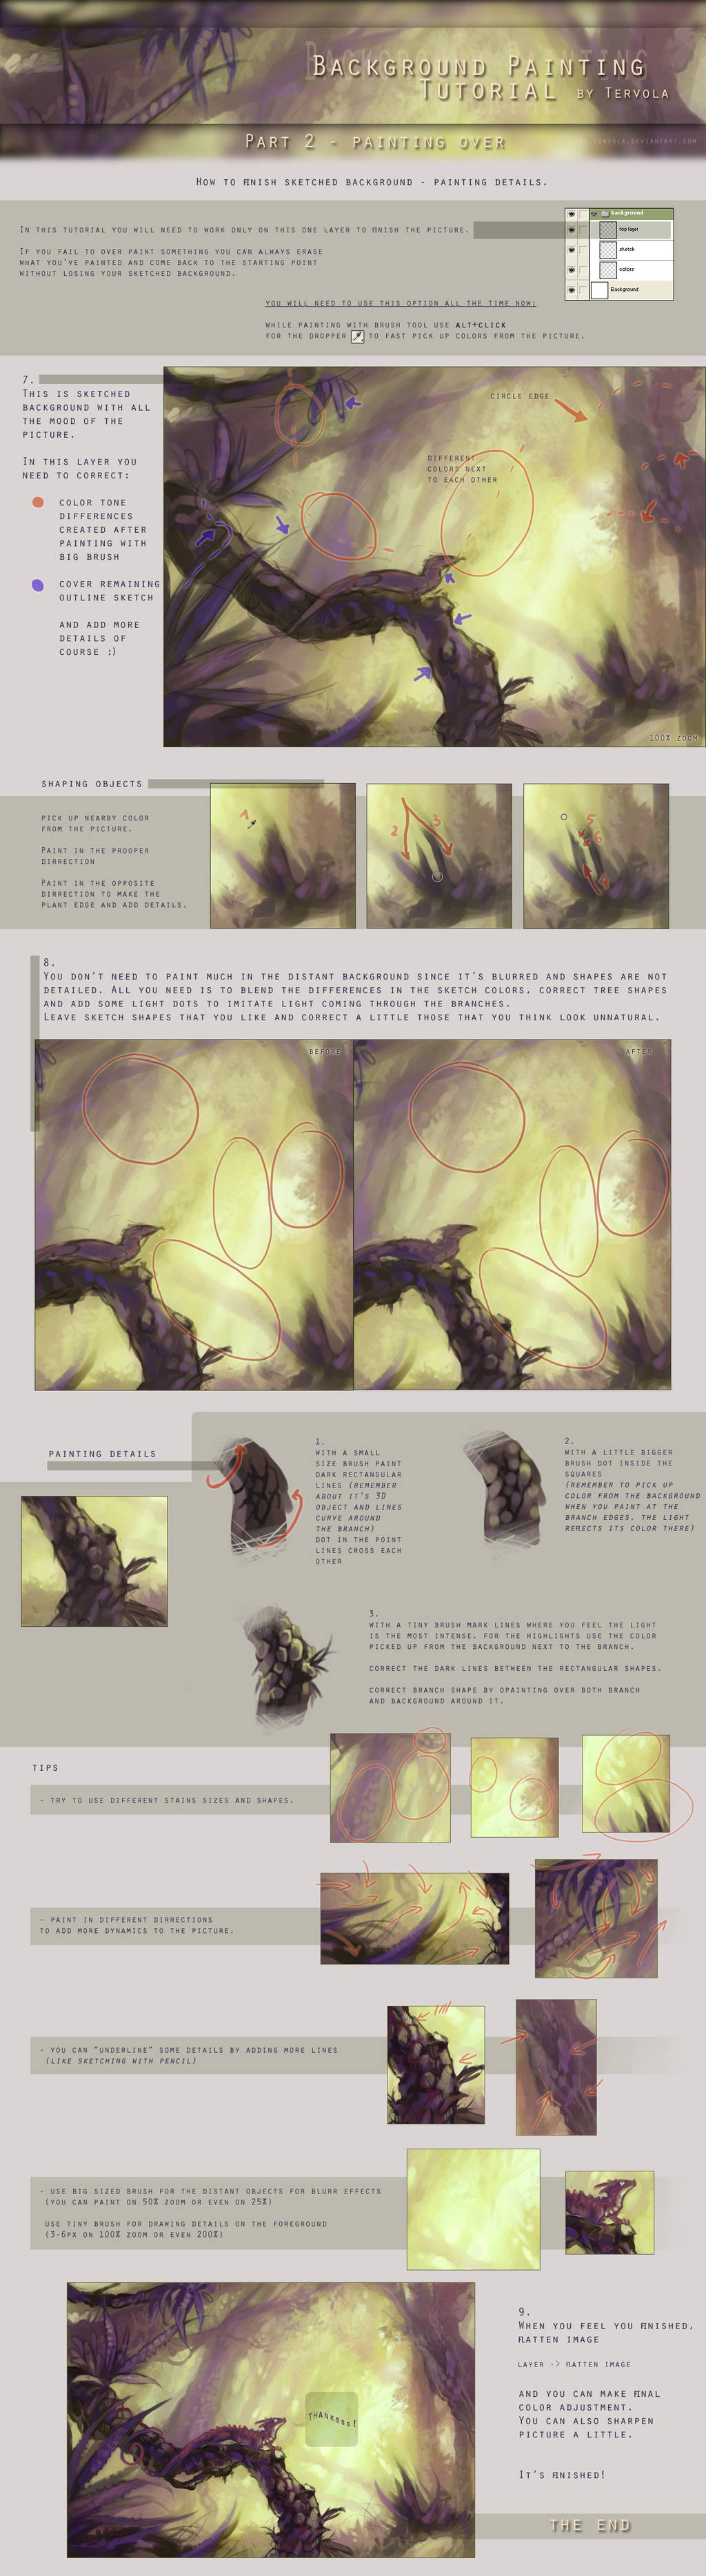 Background Tutorial 2 by Tervola